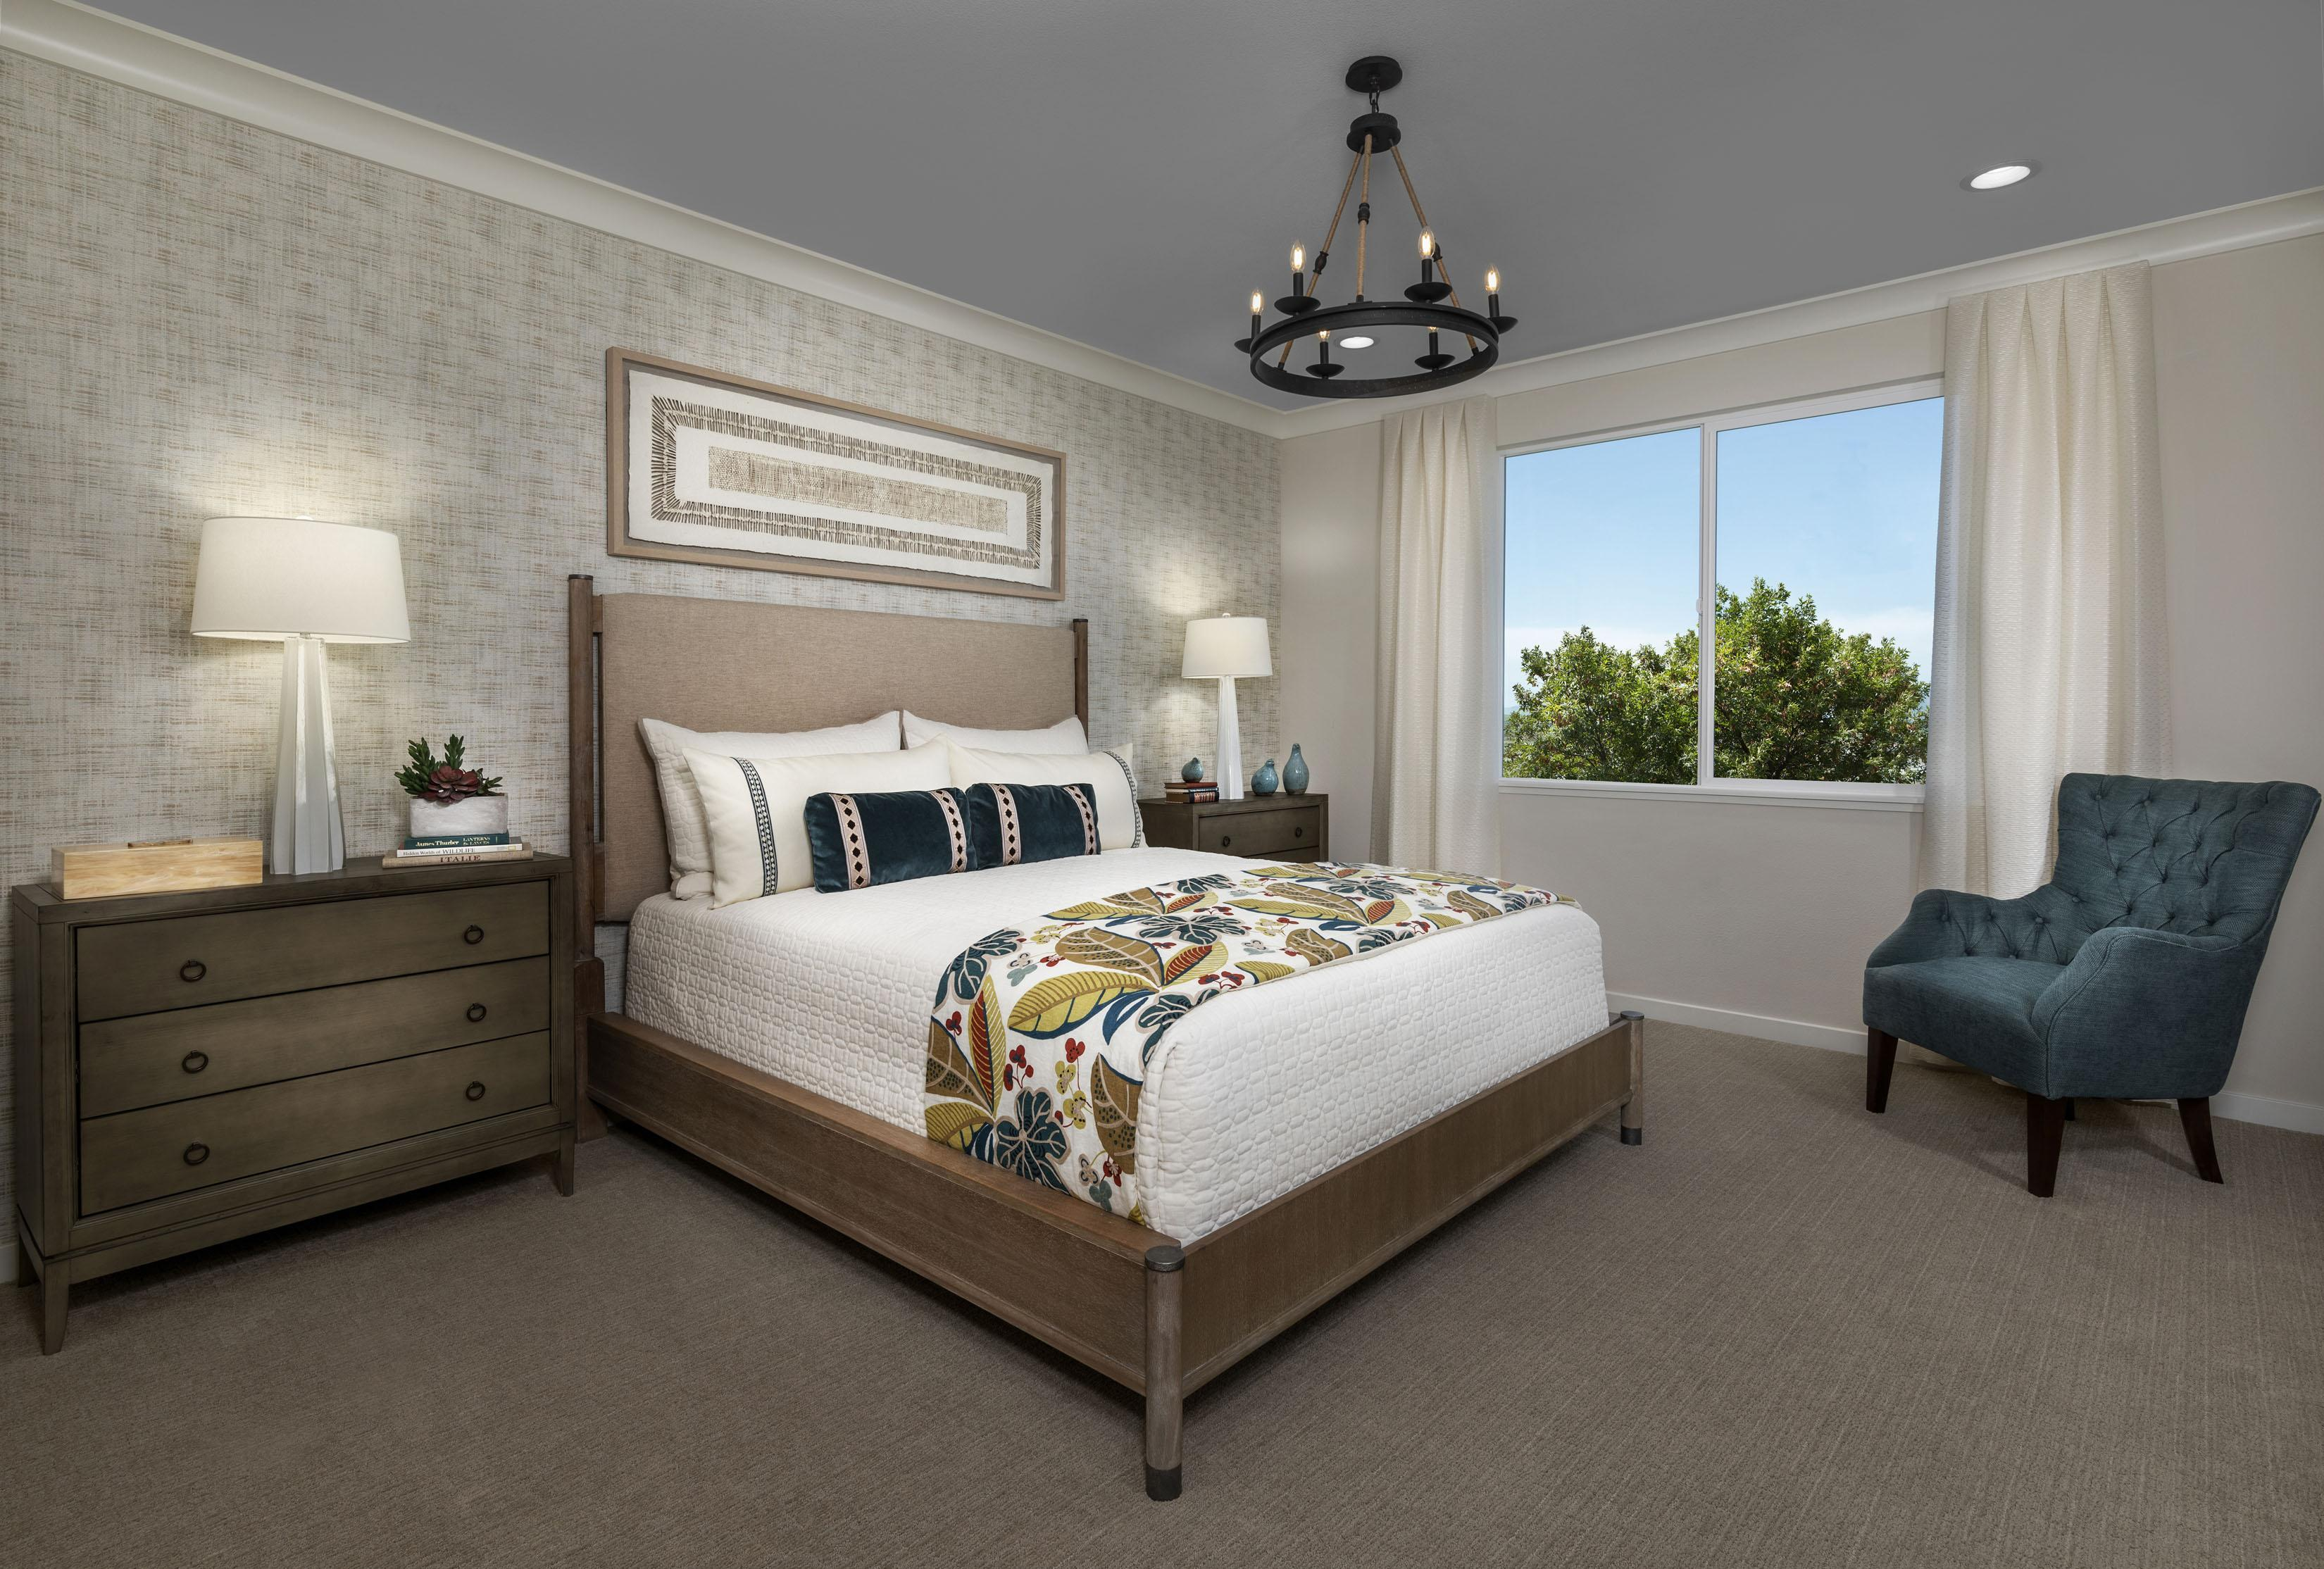 Bedroom featured in the Carousel Residence 2 By Kiper Homes in Santa Cruz, CA